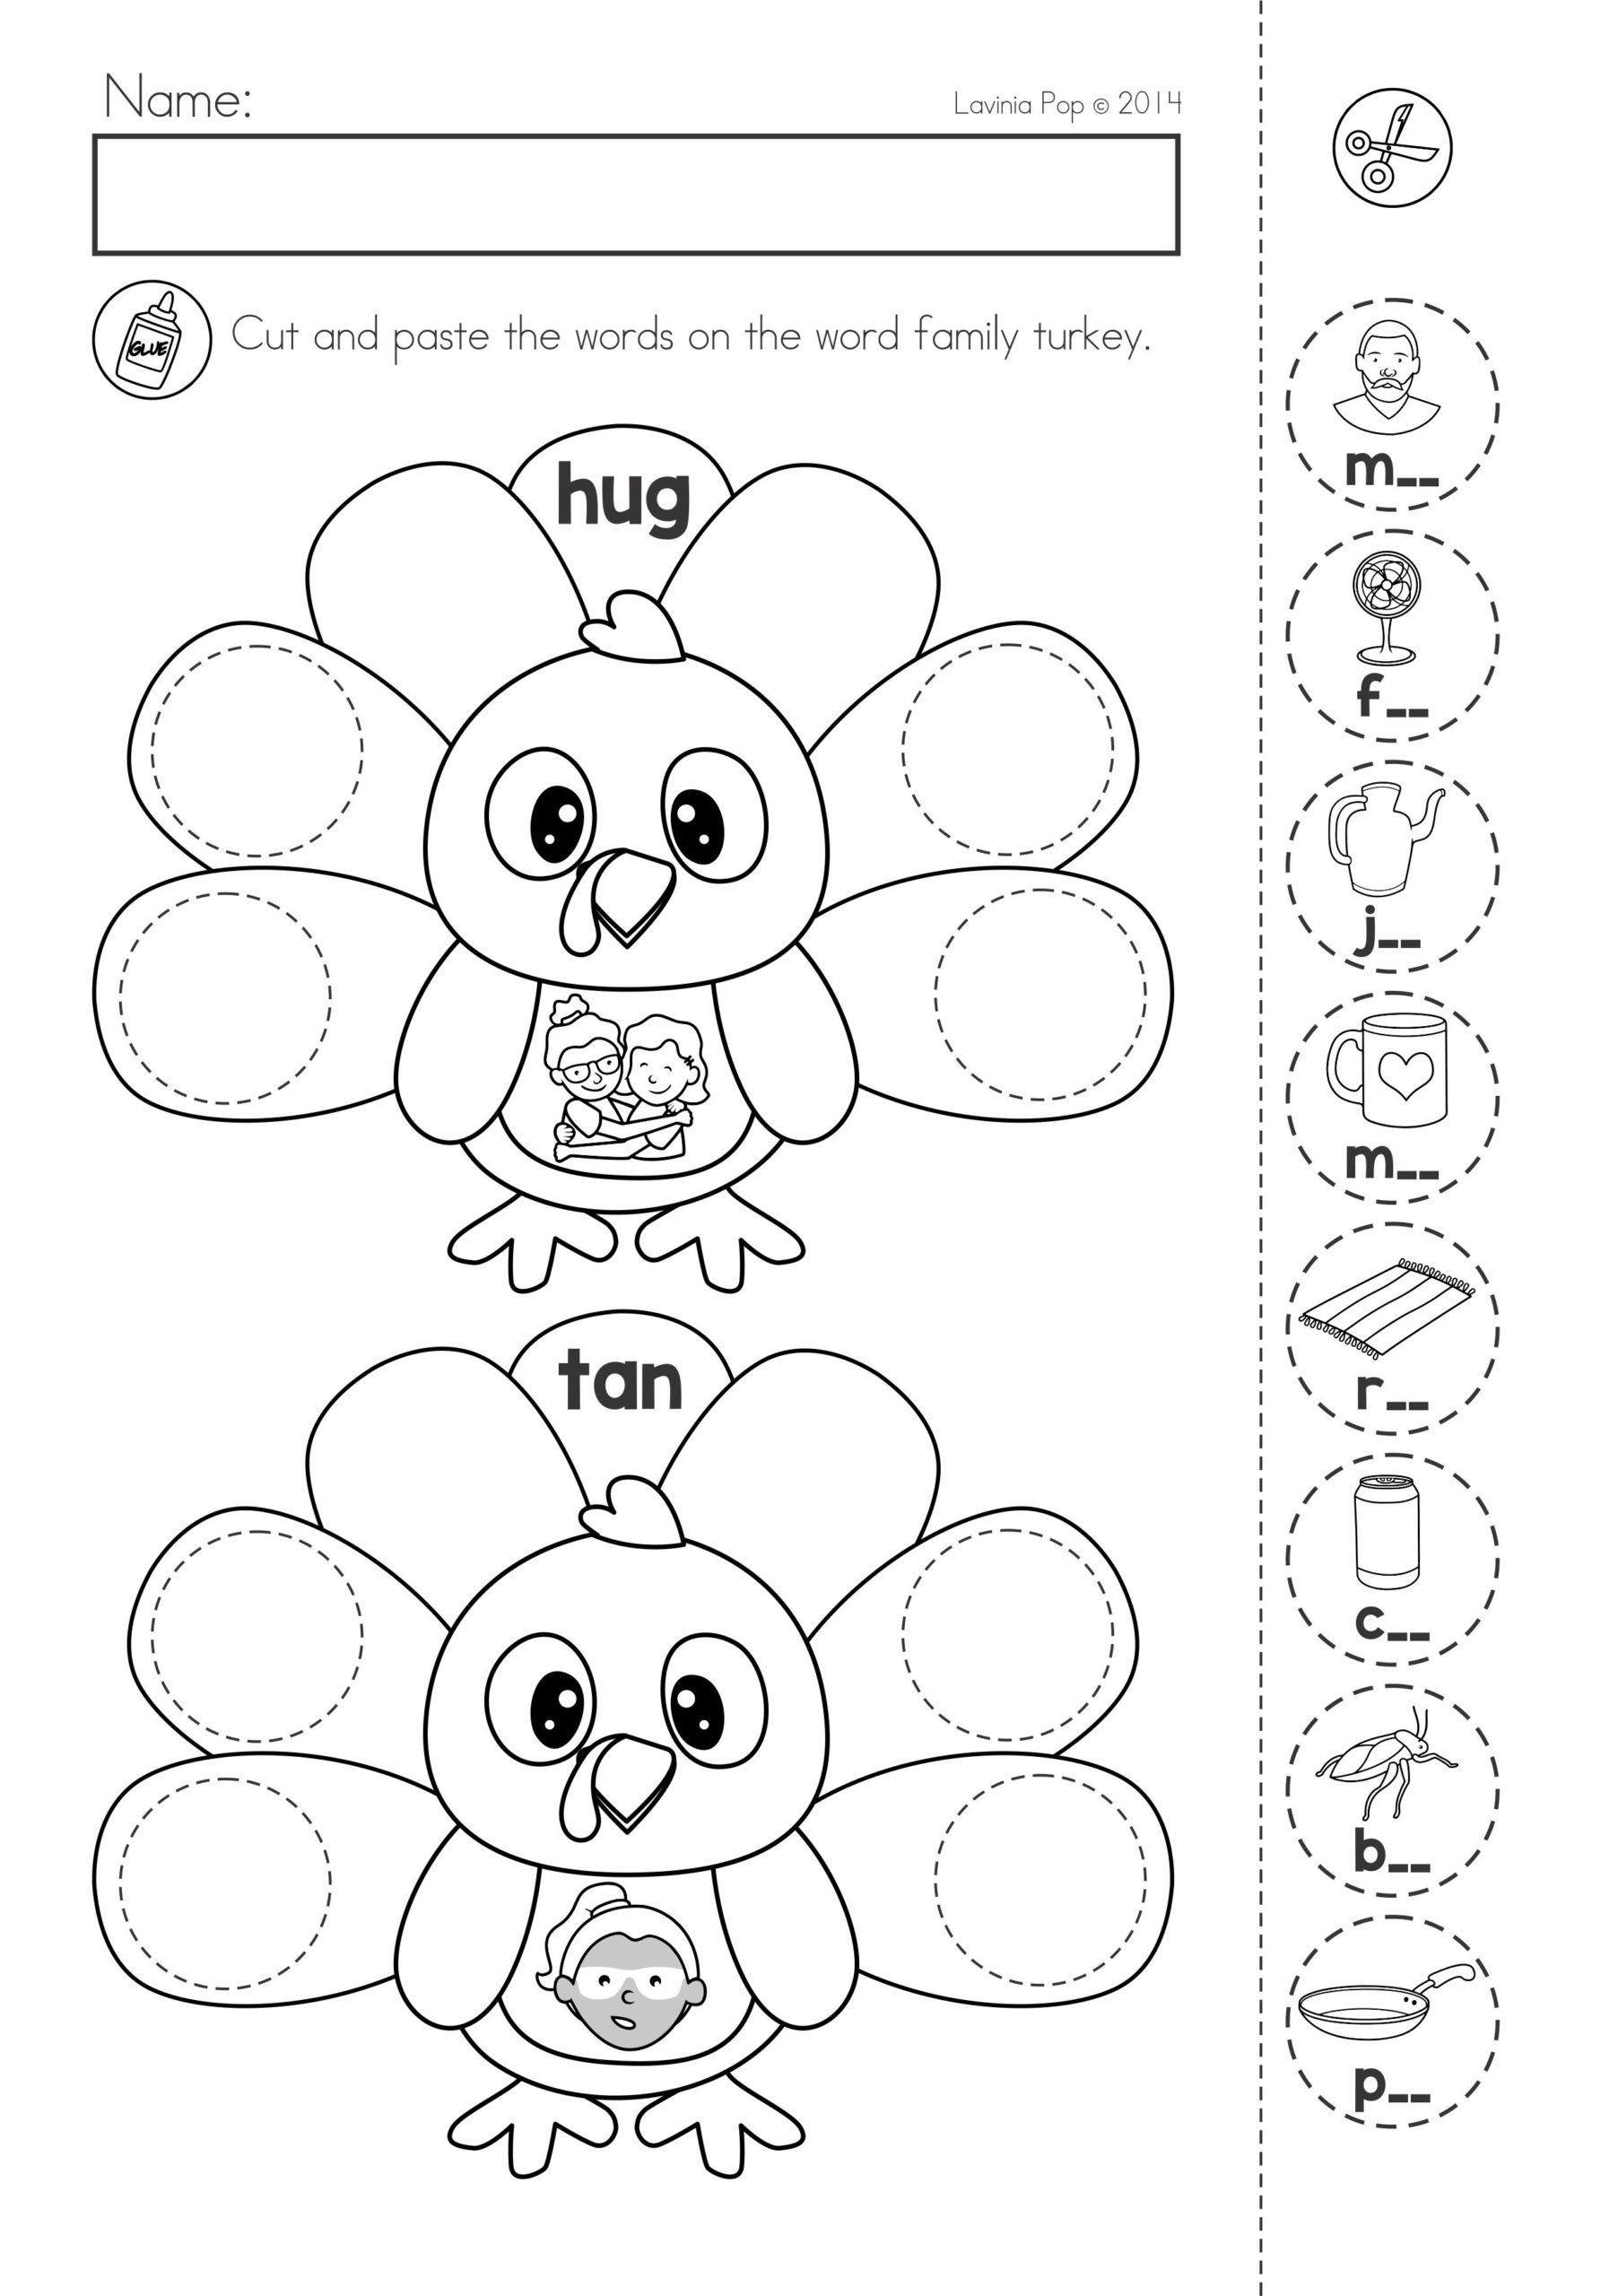 Cut and Paste Math Worksheets Easy Math Tricks First Person and Third Person Worksheets